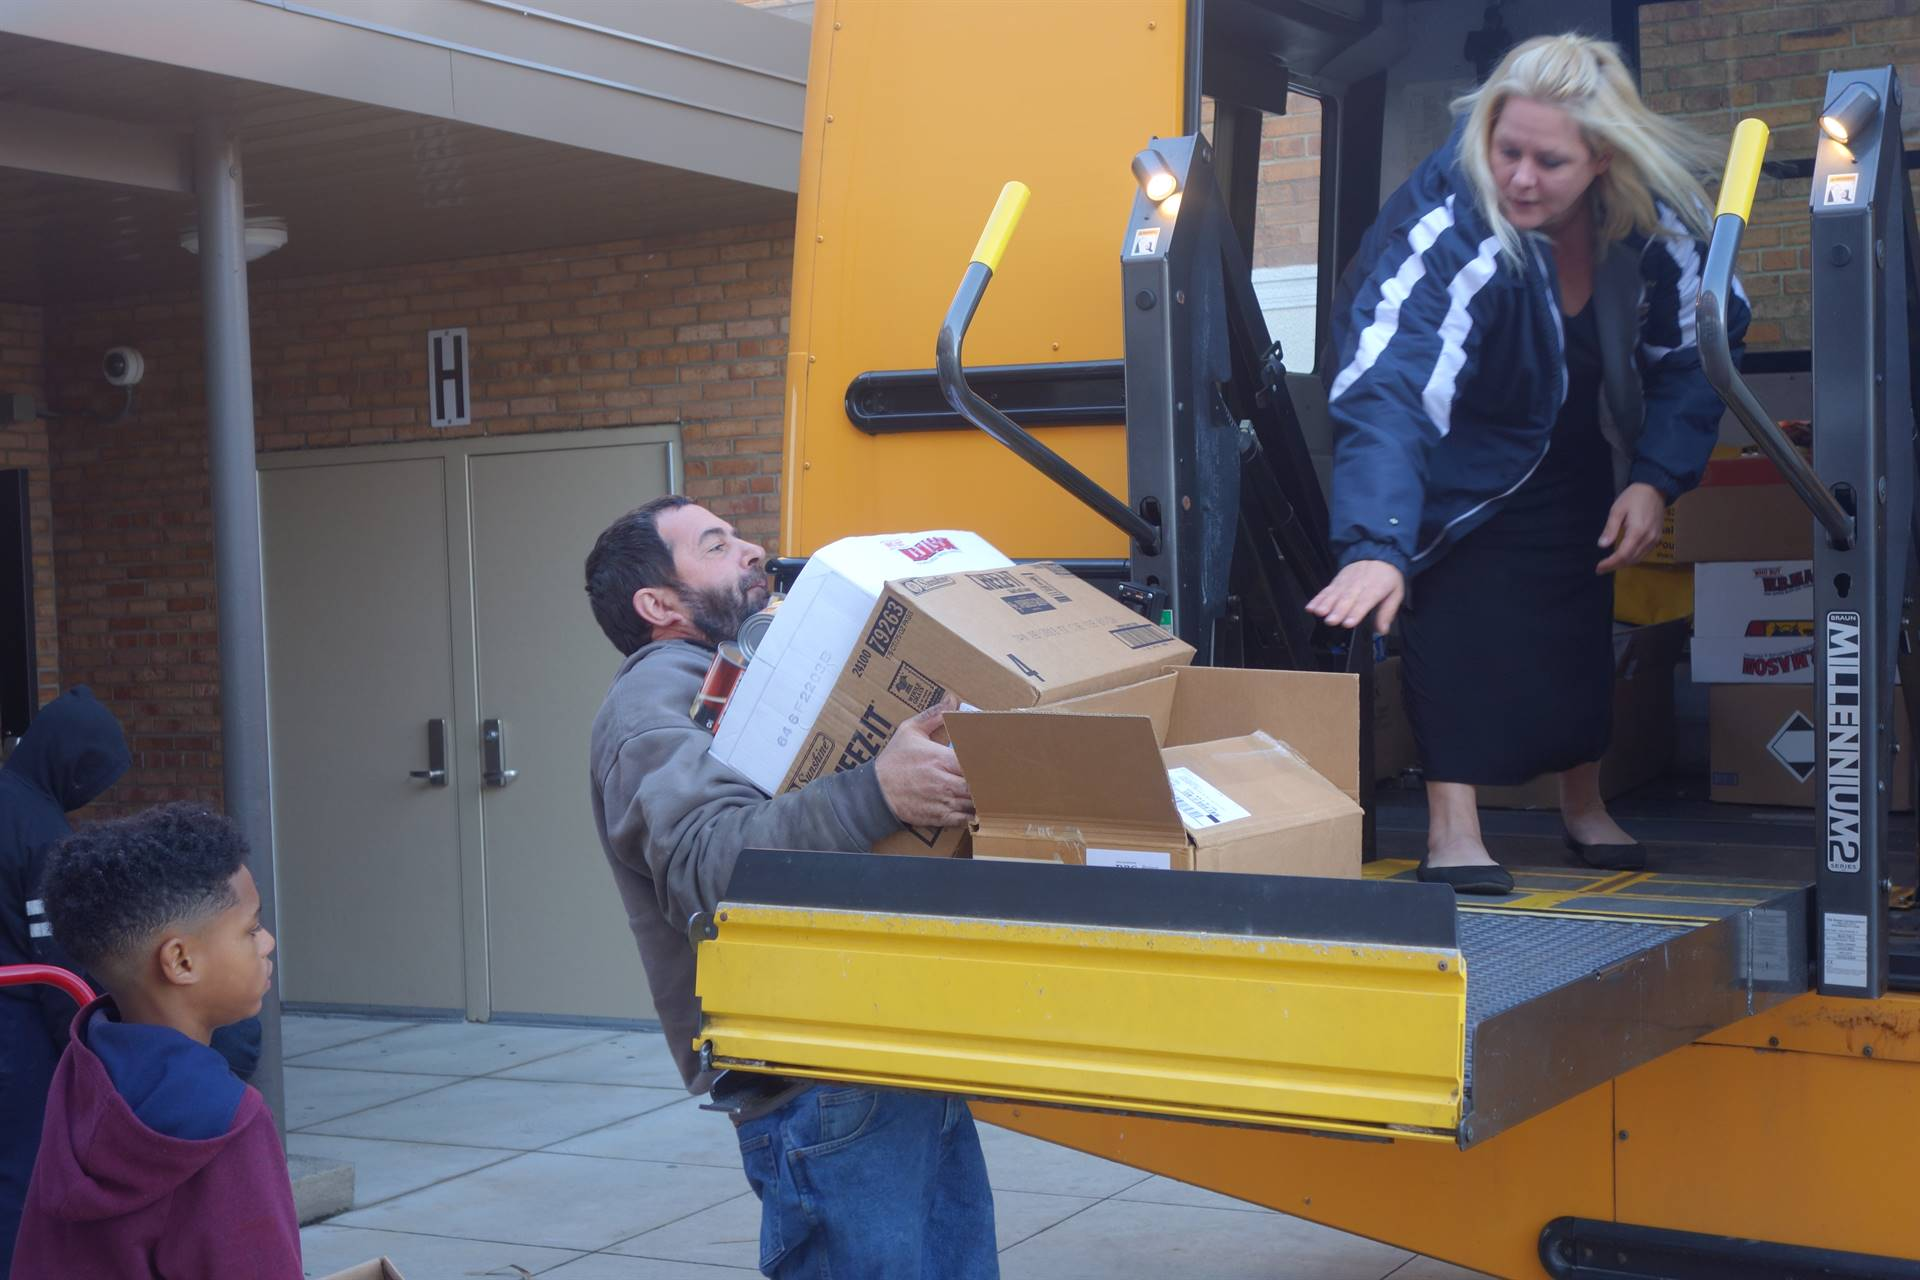 staff loading boxes onto a school bus lift